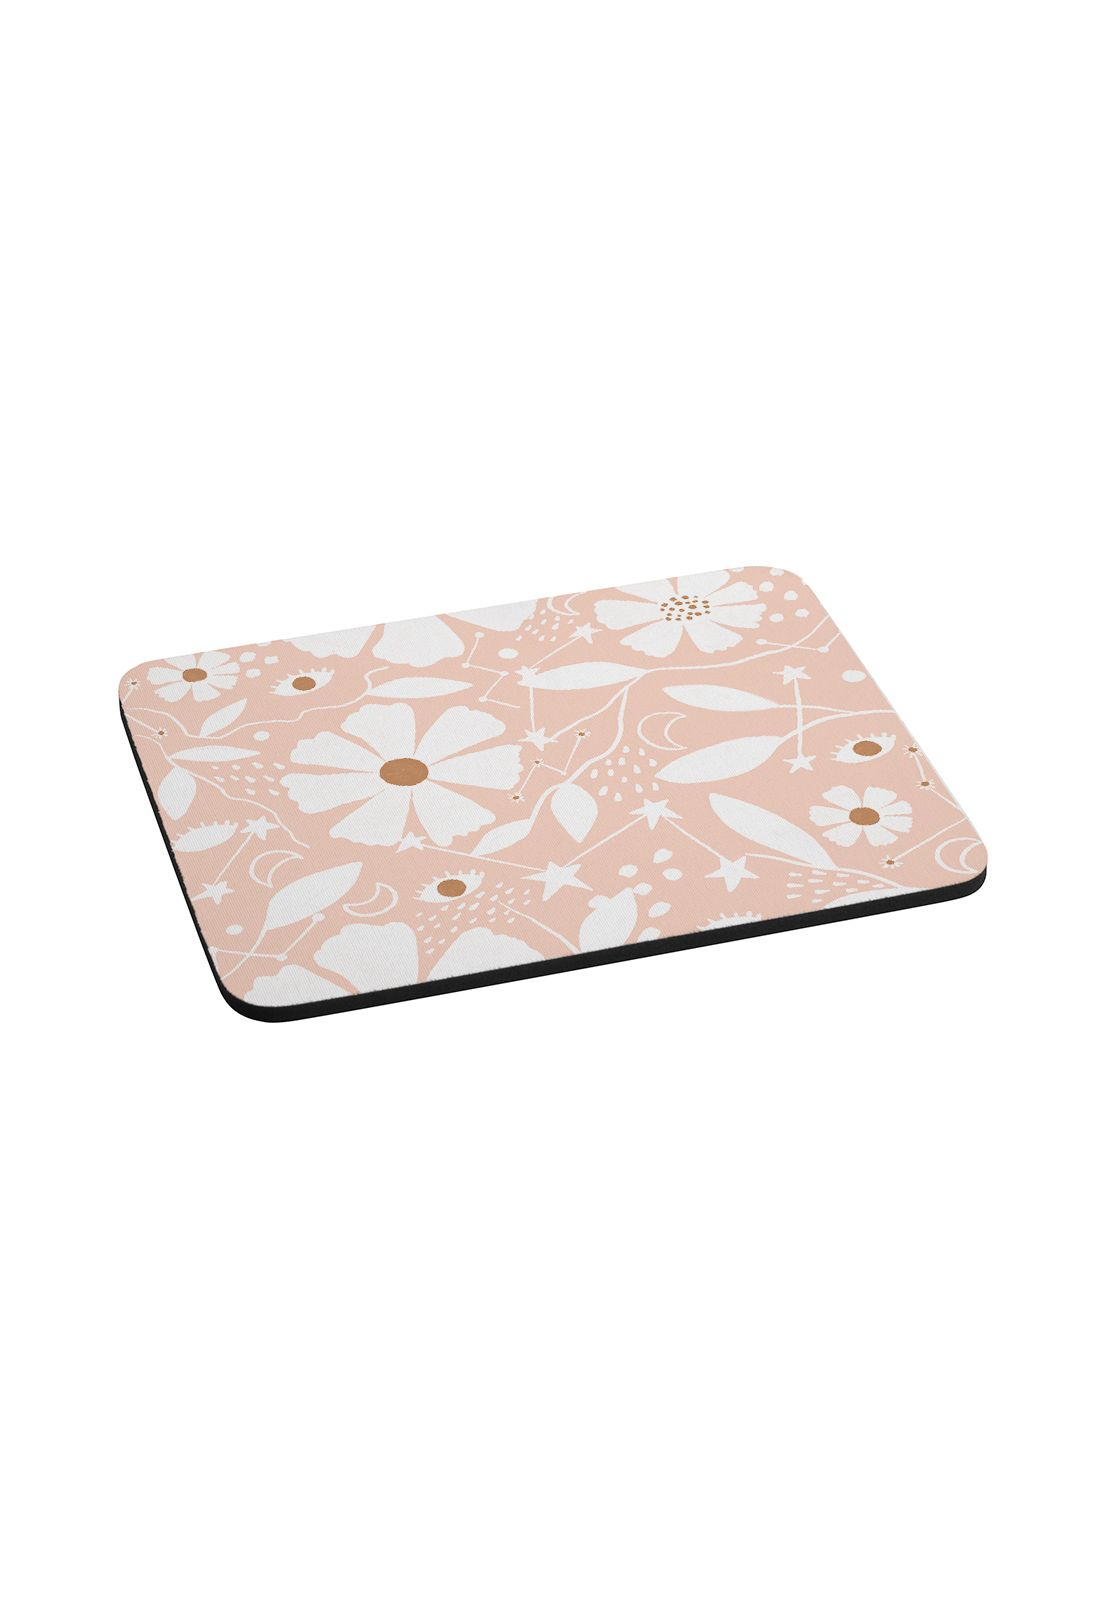 Mousepad Flores soft